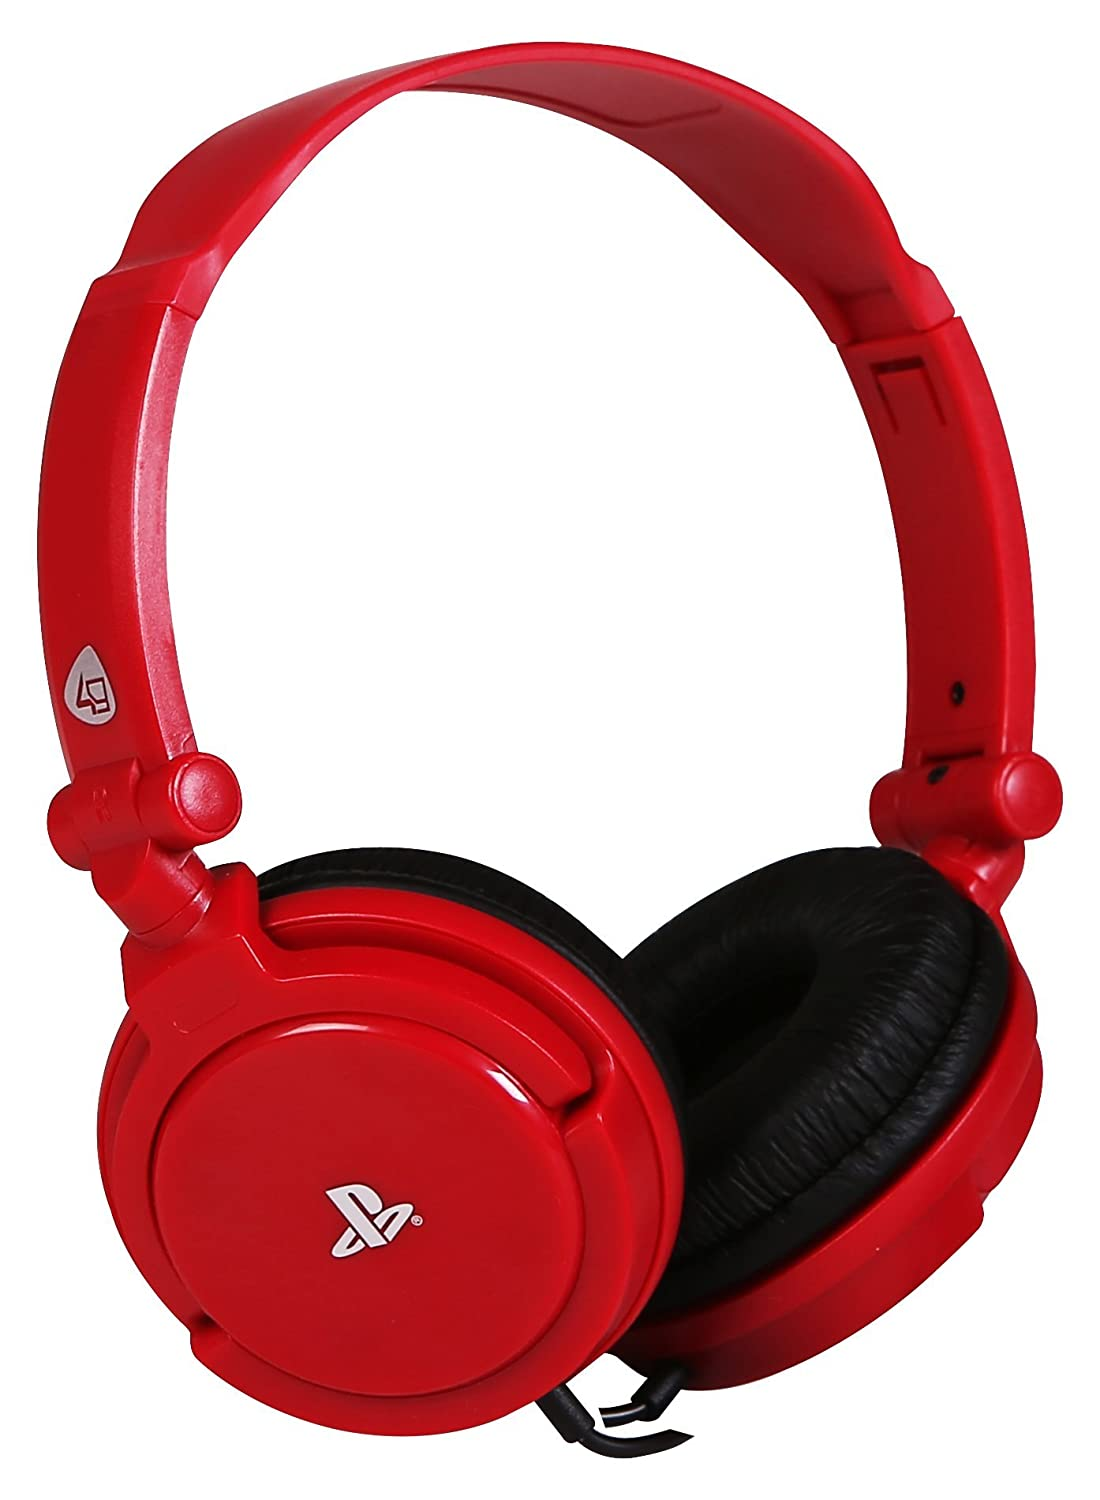 Online limited product PRO4-10 Officially Licensed Stereo Gaming Headset Red price - PS4 PSV